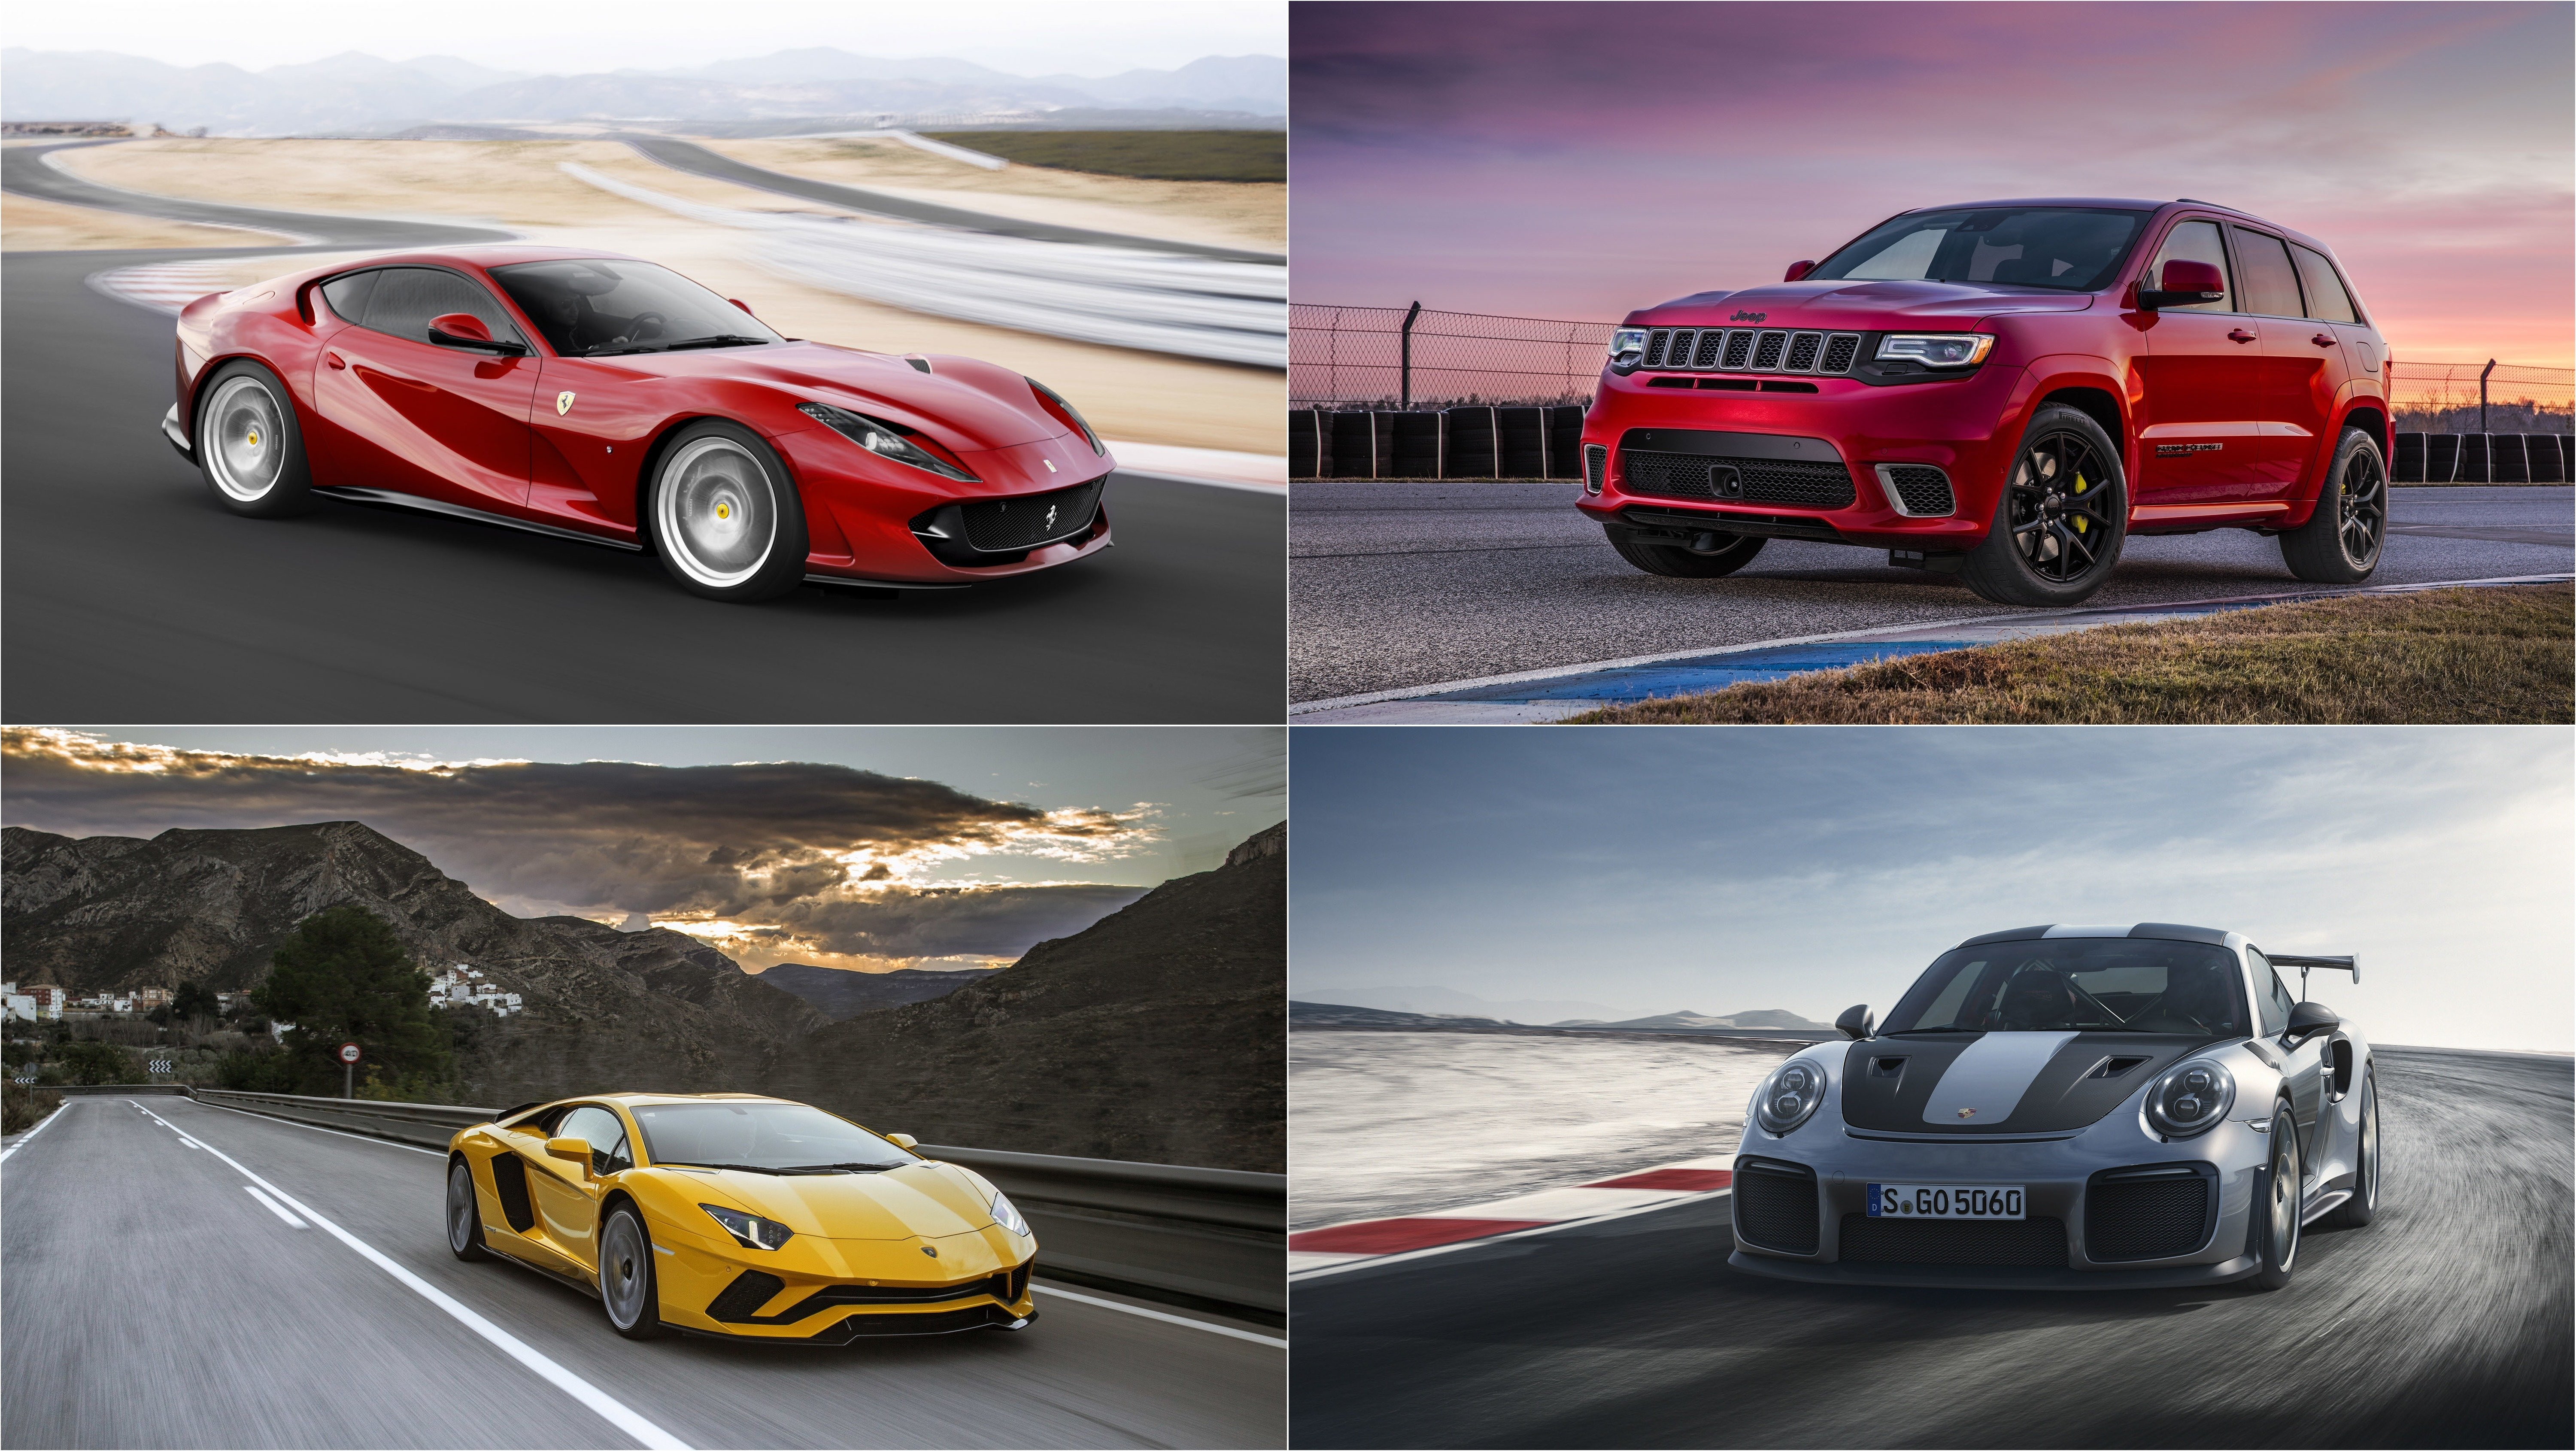 reputable site 60337 f5a8f When somebody mentioned a 700+ horsepower, say, ten years ago, you would  have thought about the handful of vehicles that come close to that value in  ...